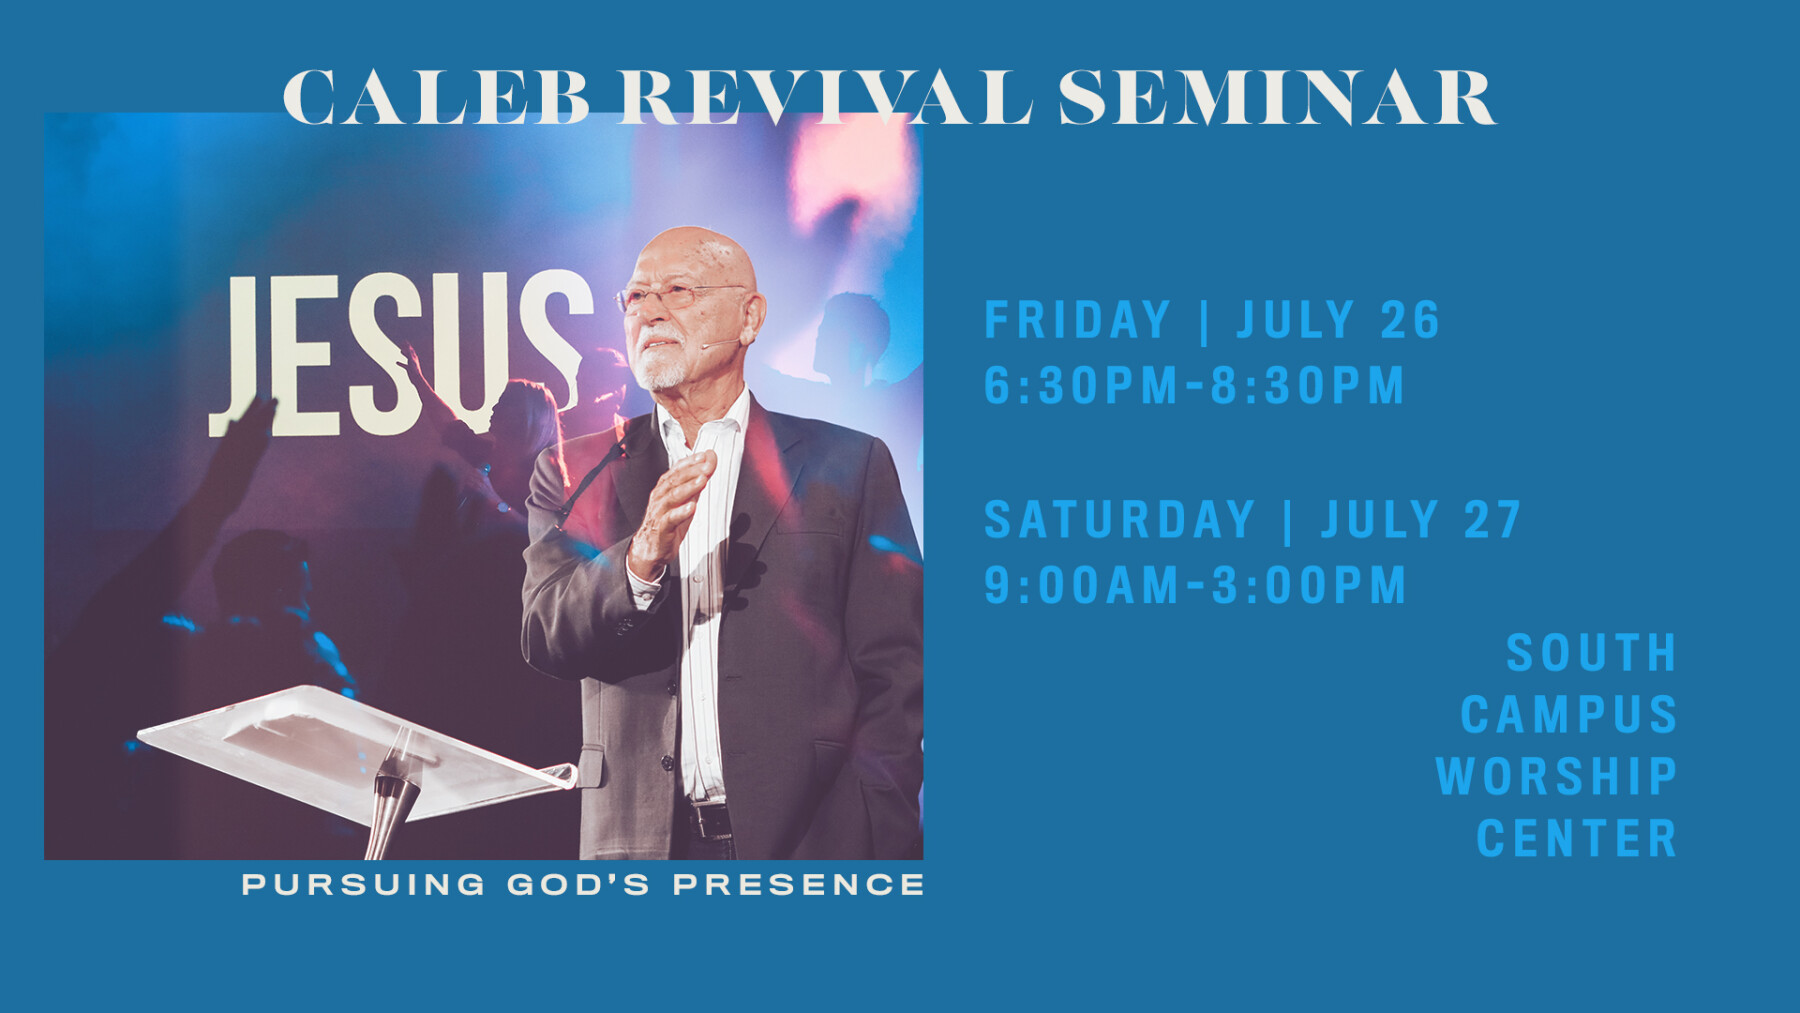 Caleb Revival Seminar FRIDAY